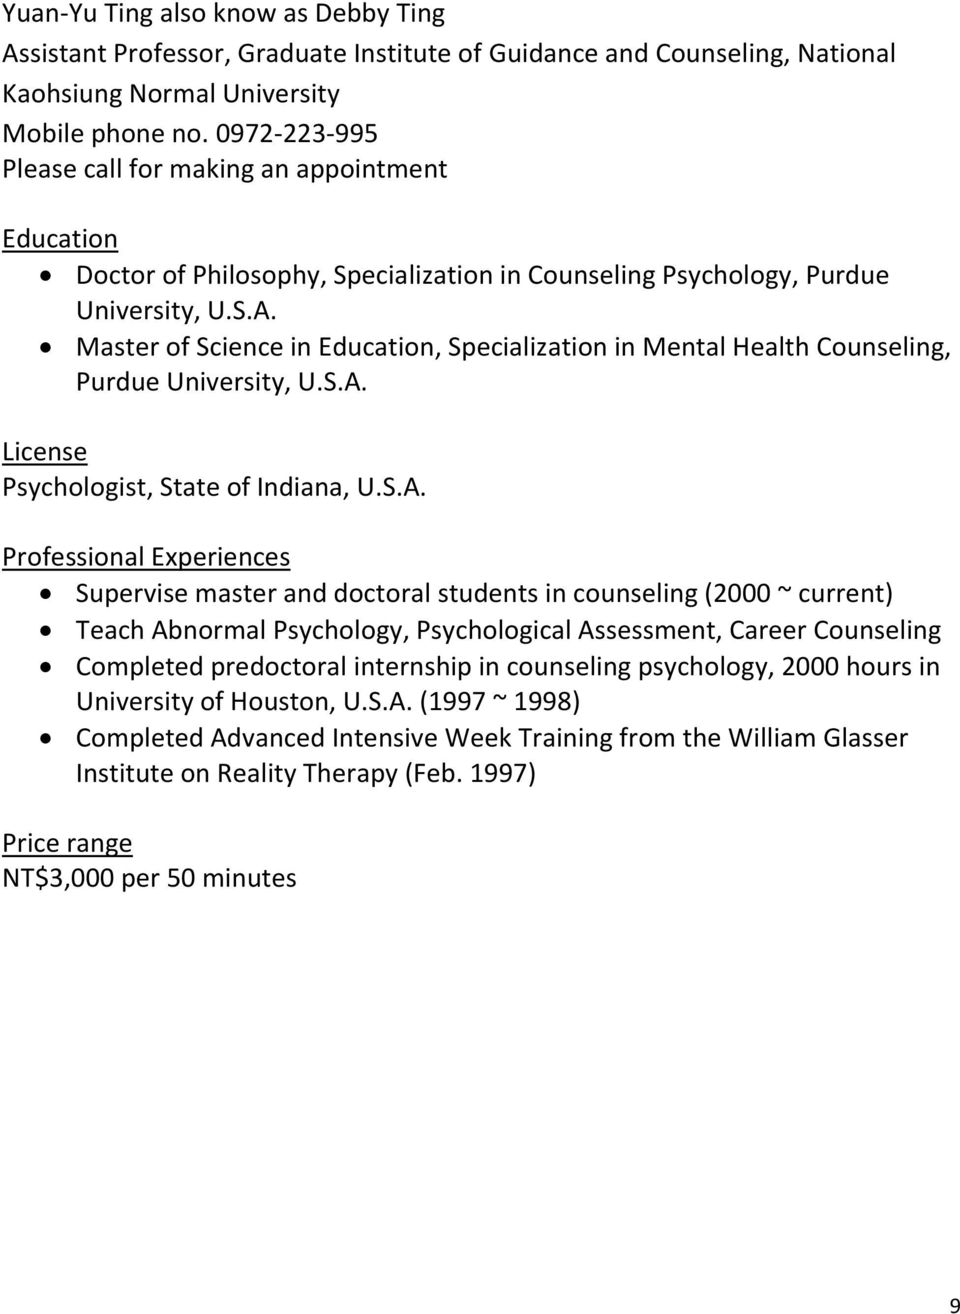 Master of Science in, Specialization in Mental Health Counseling, Purdue University, U.S.A.